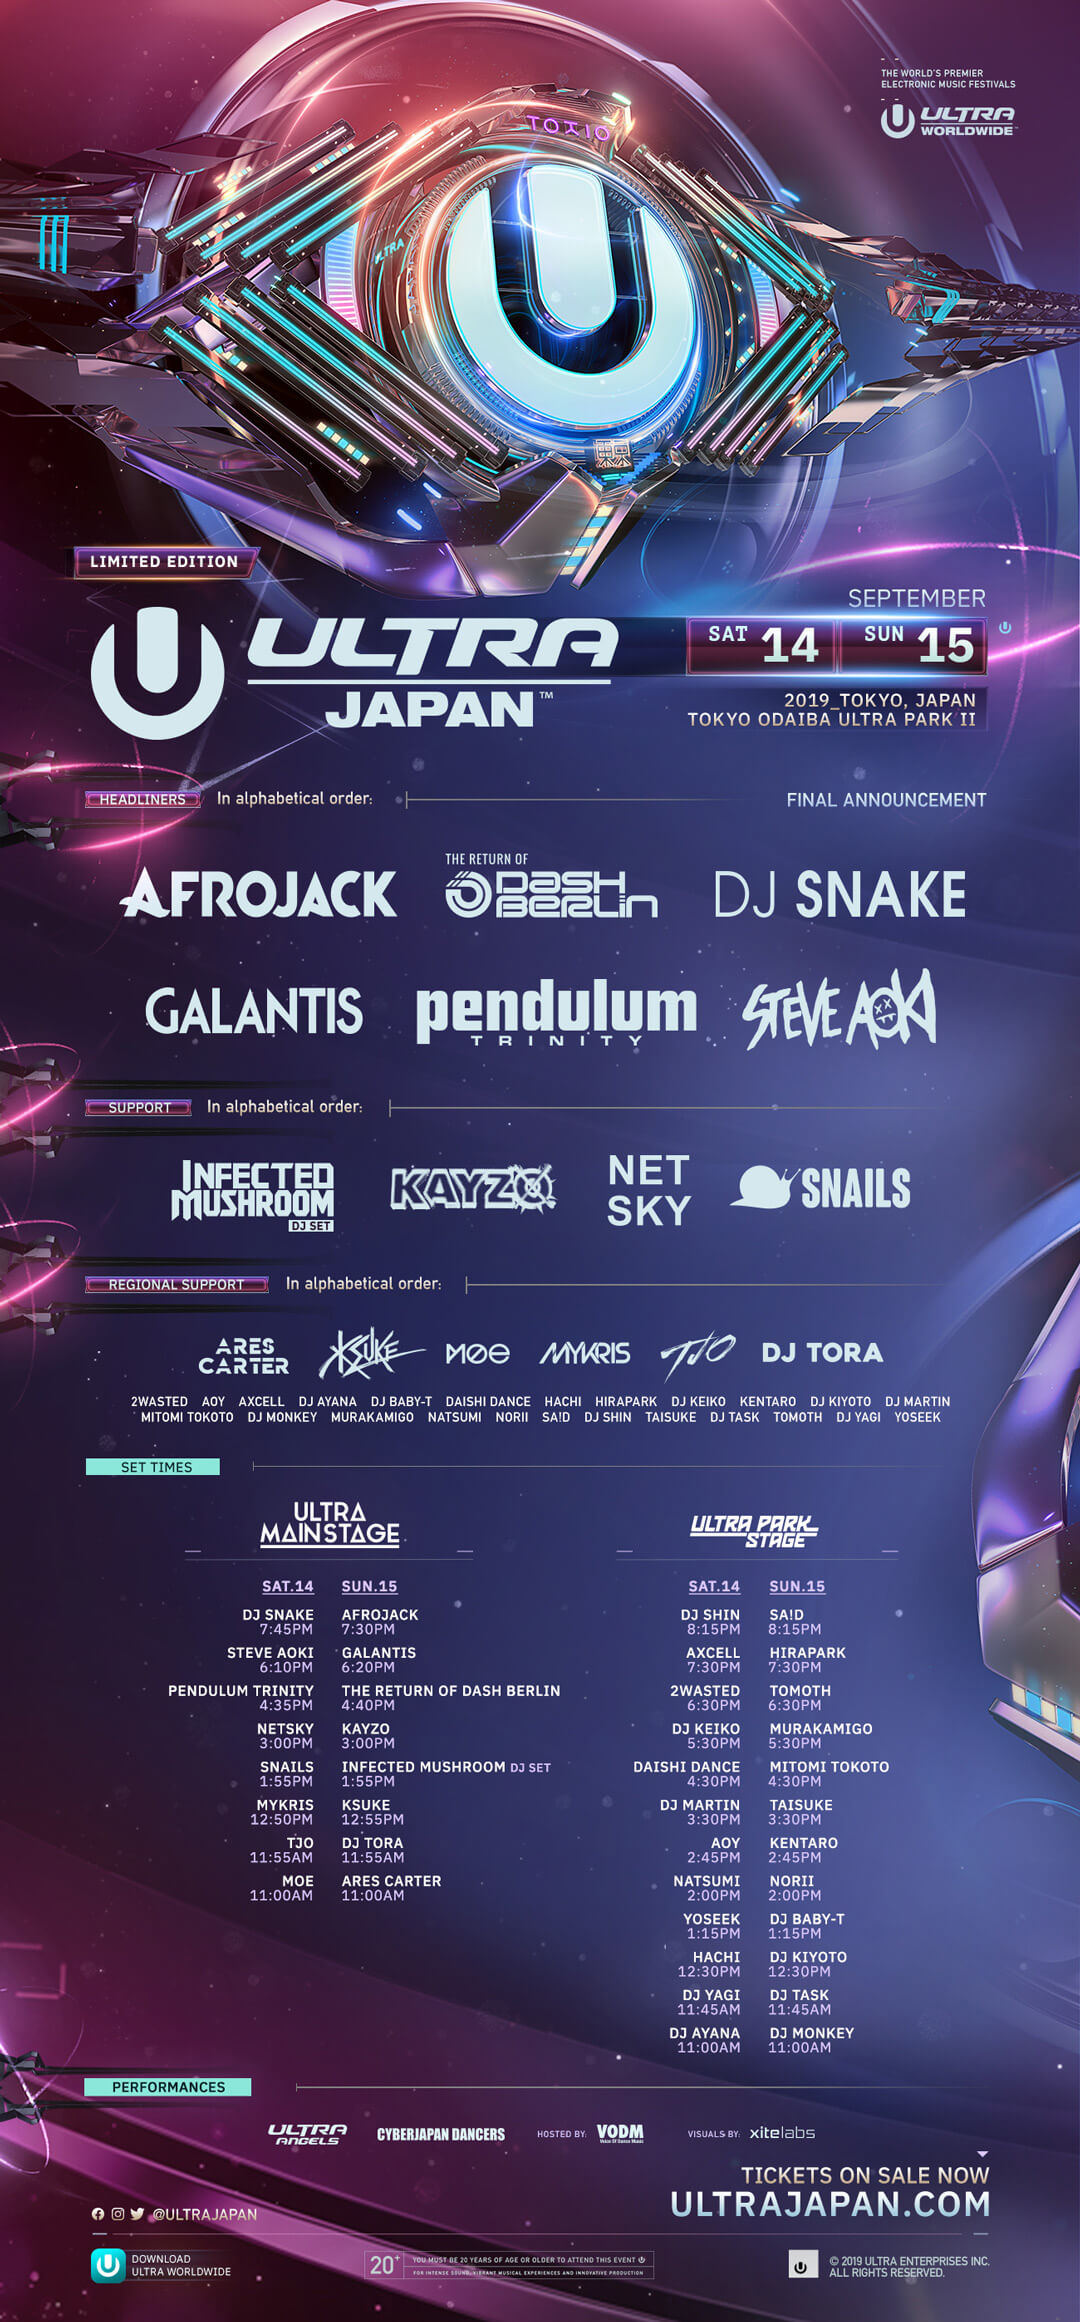 ULTRA Japan Releases Set Times